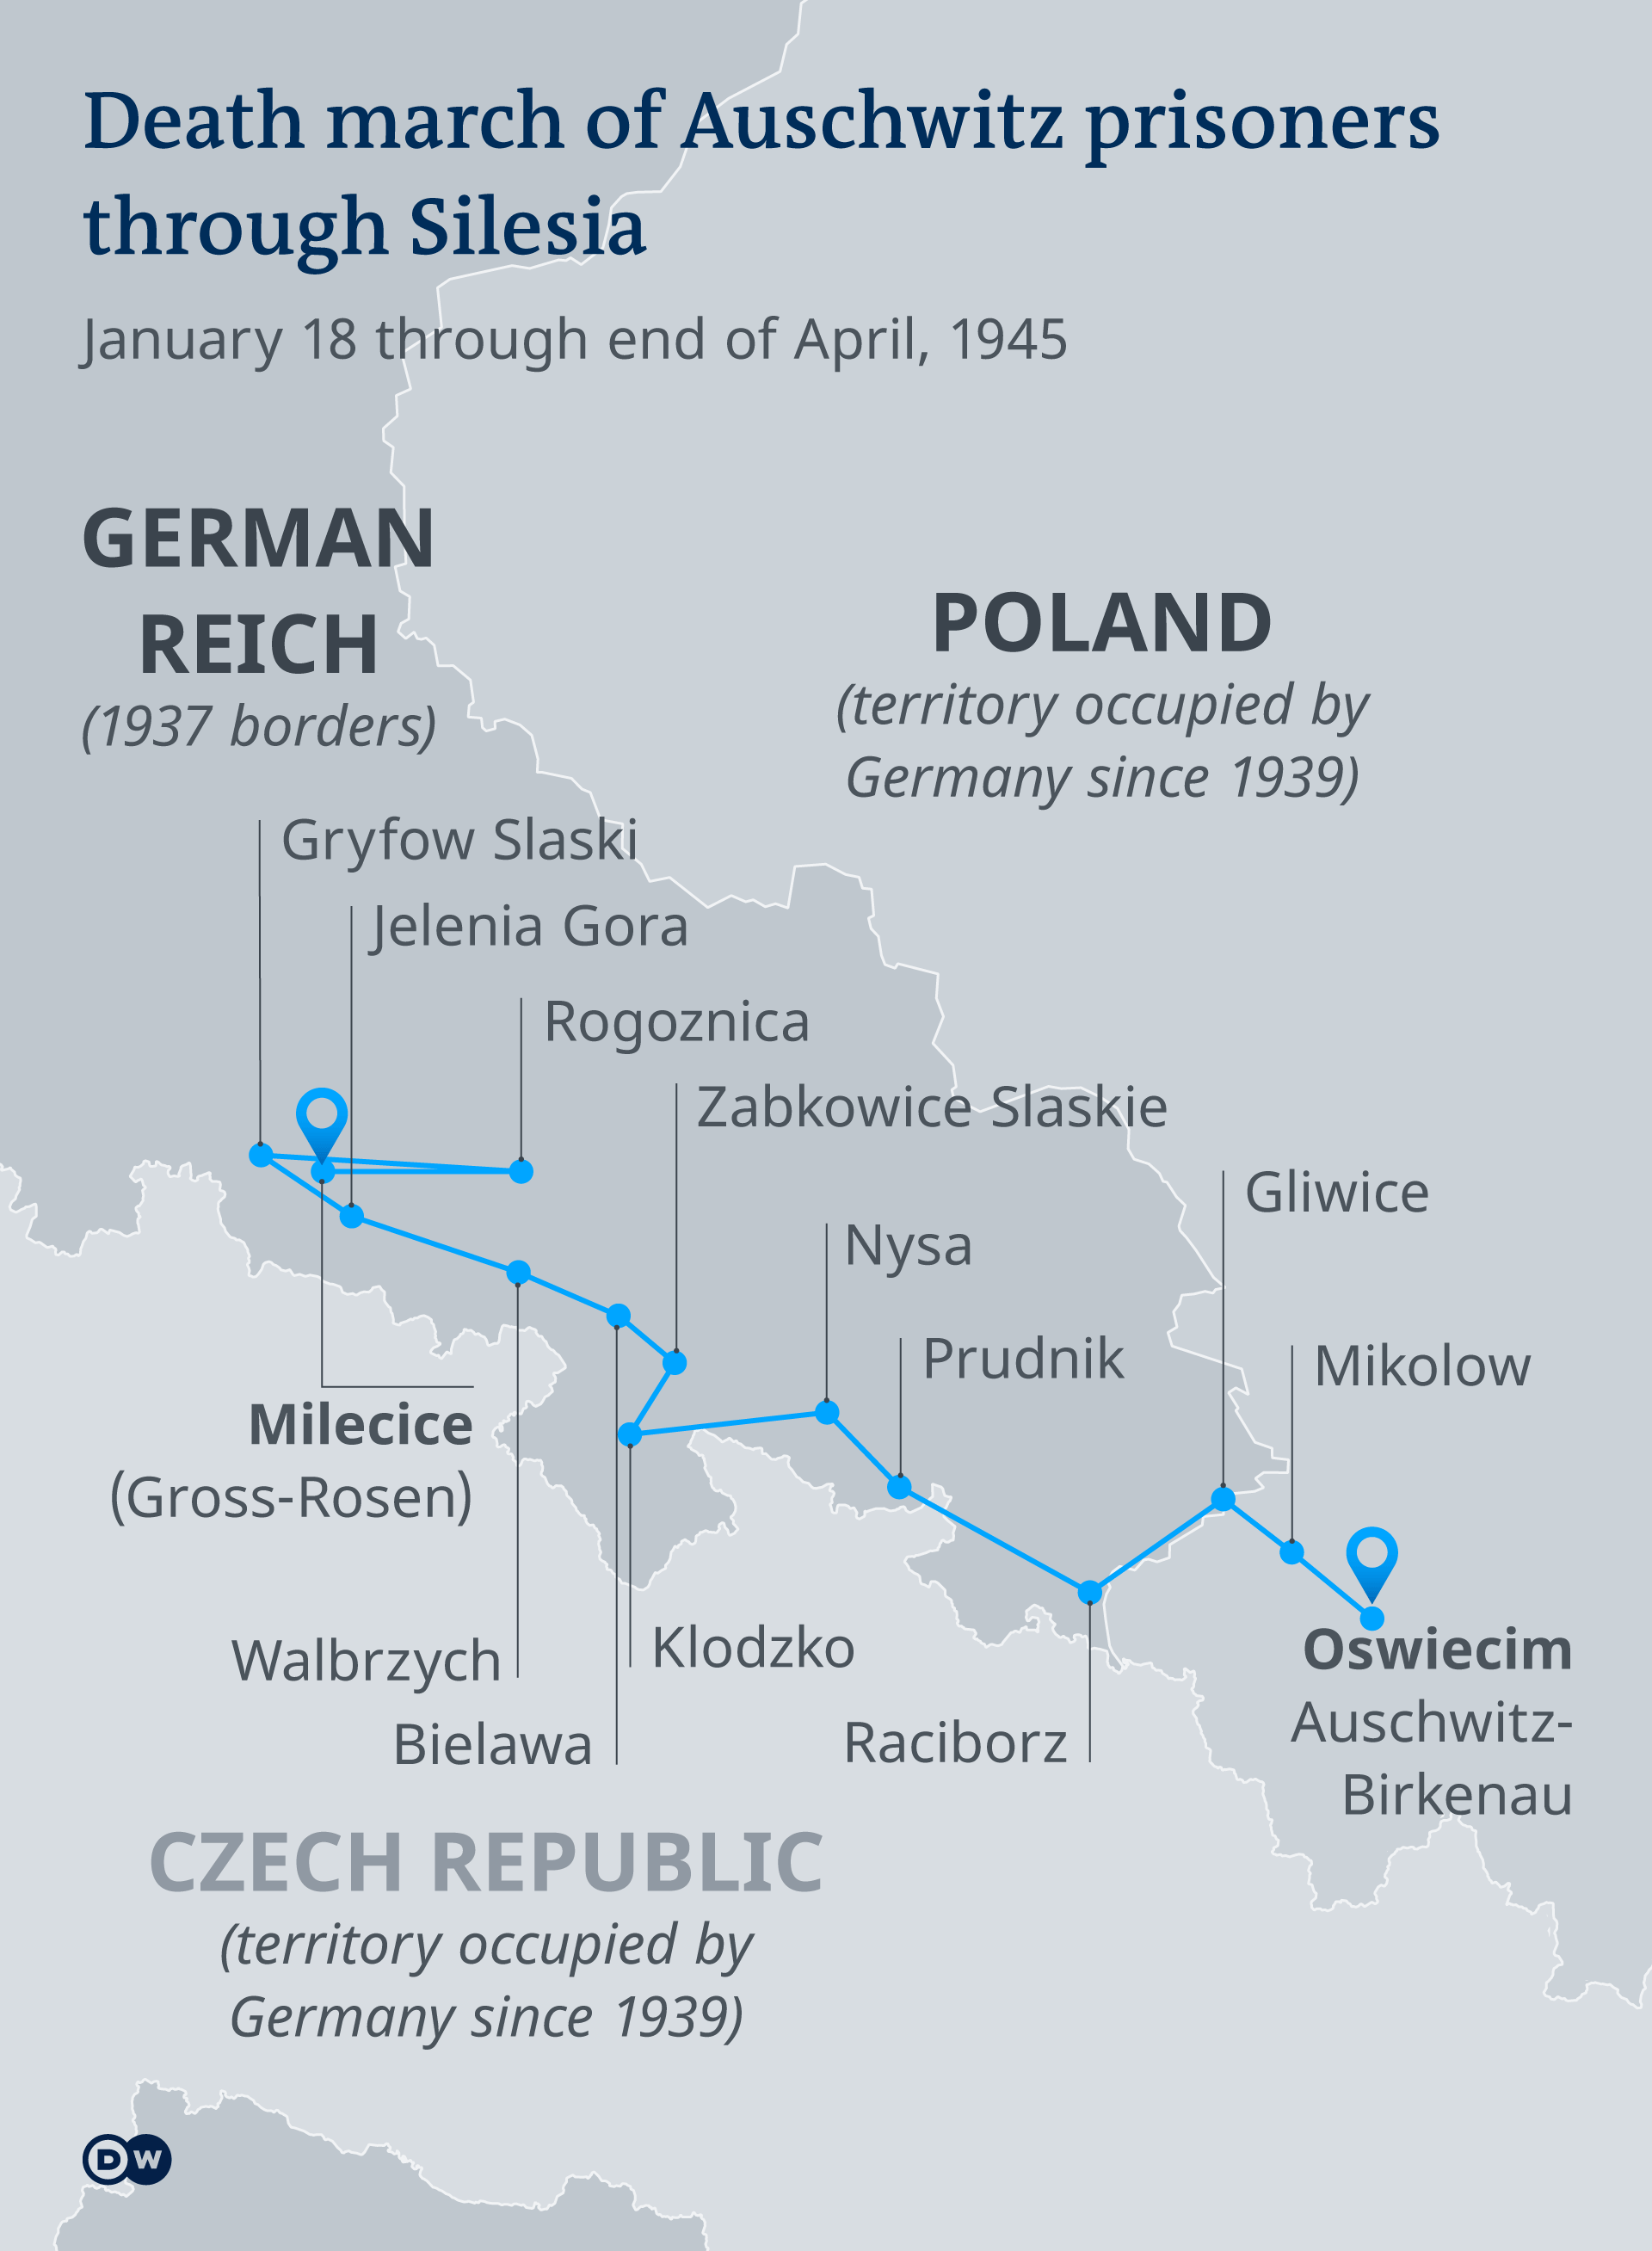 Map shows the route of the death marches in 1945